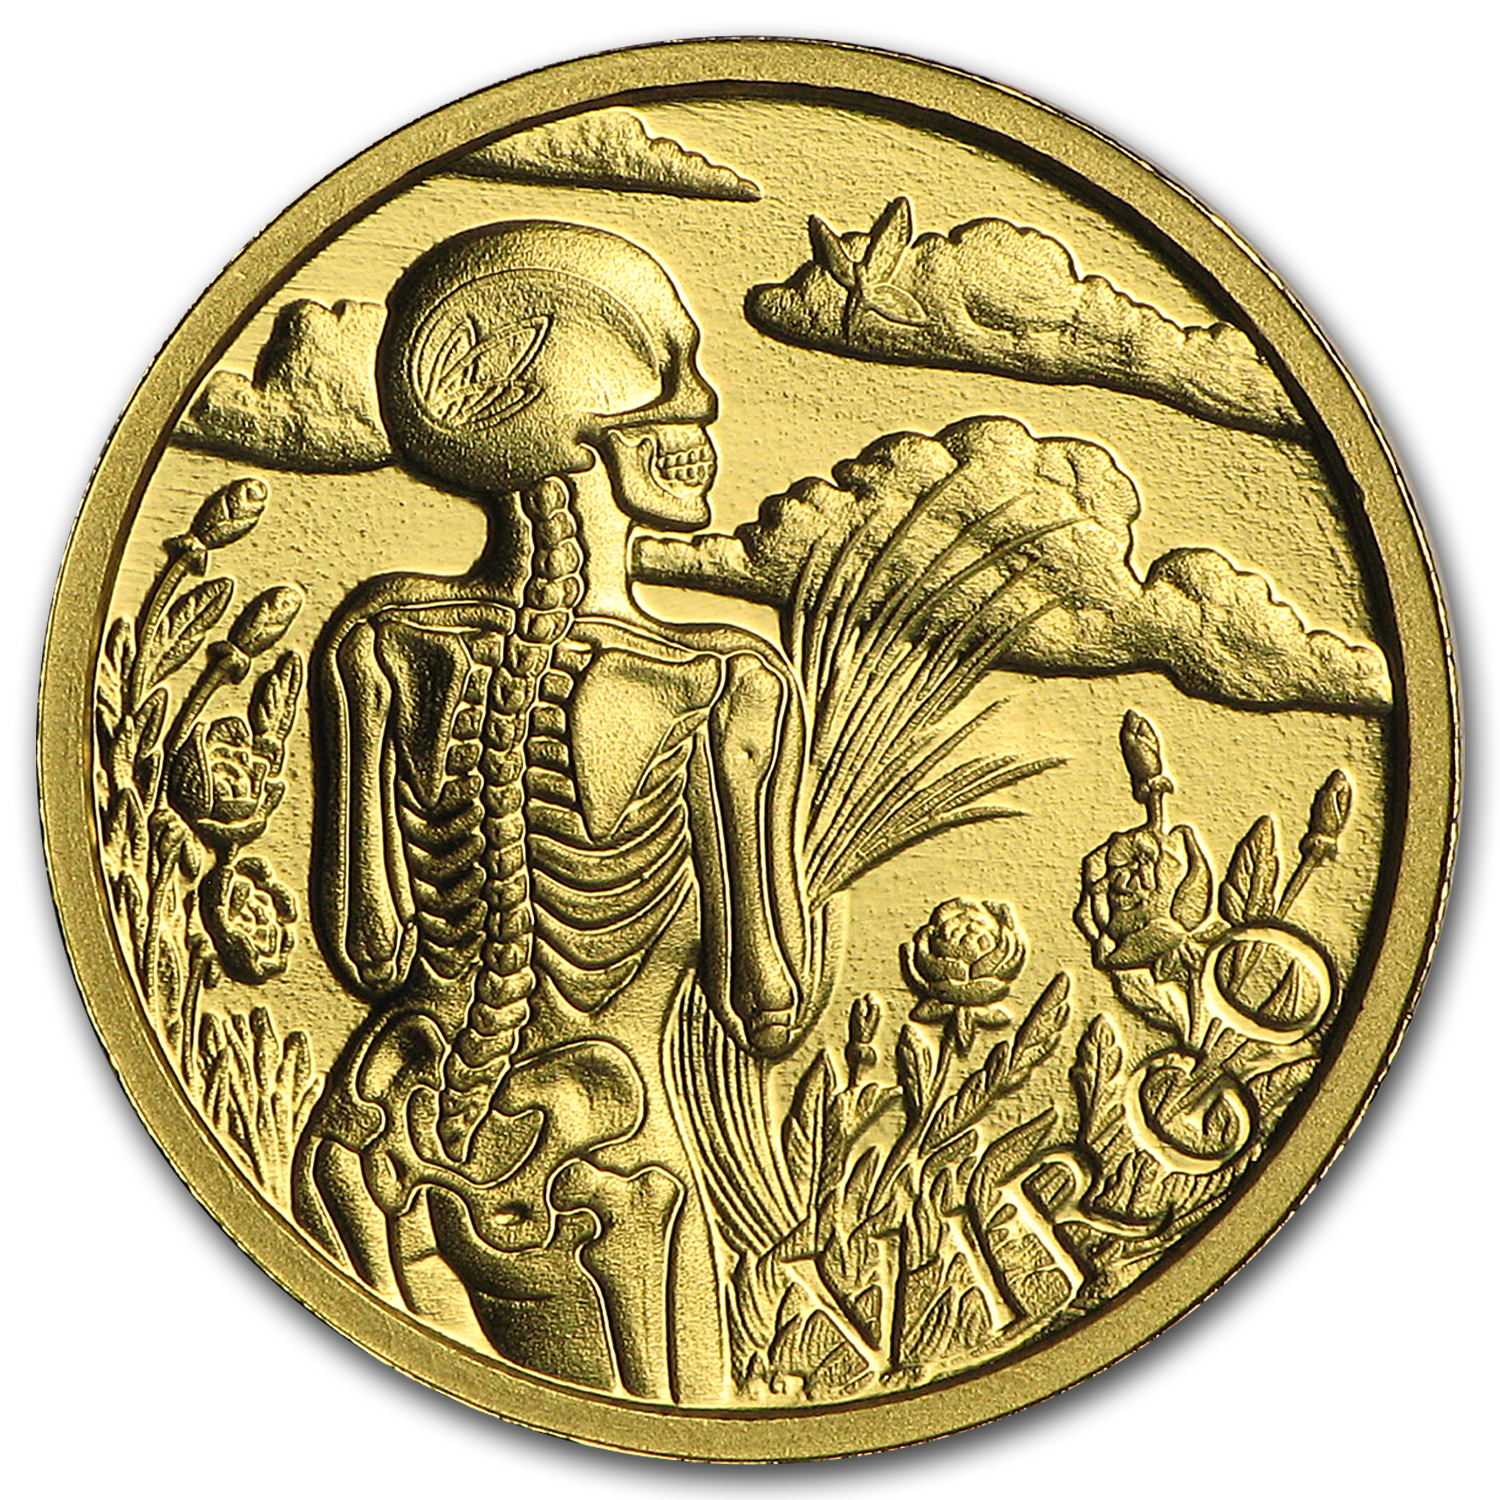 1/10 oz Gold Proof Round - Zodiac Skull Series (Virgo)